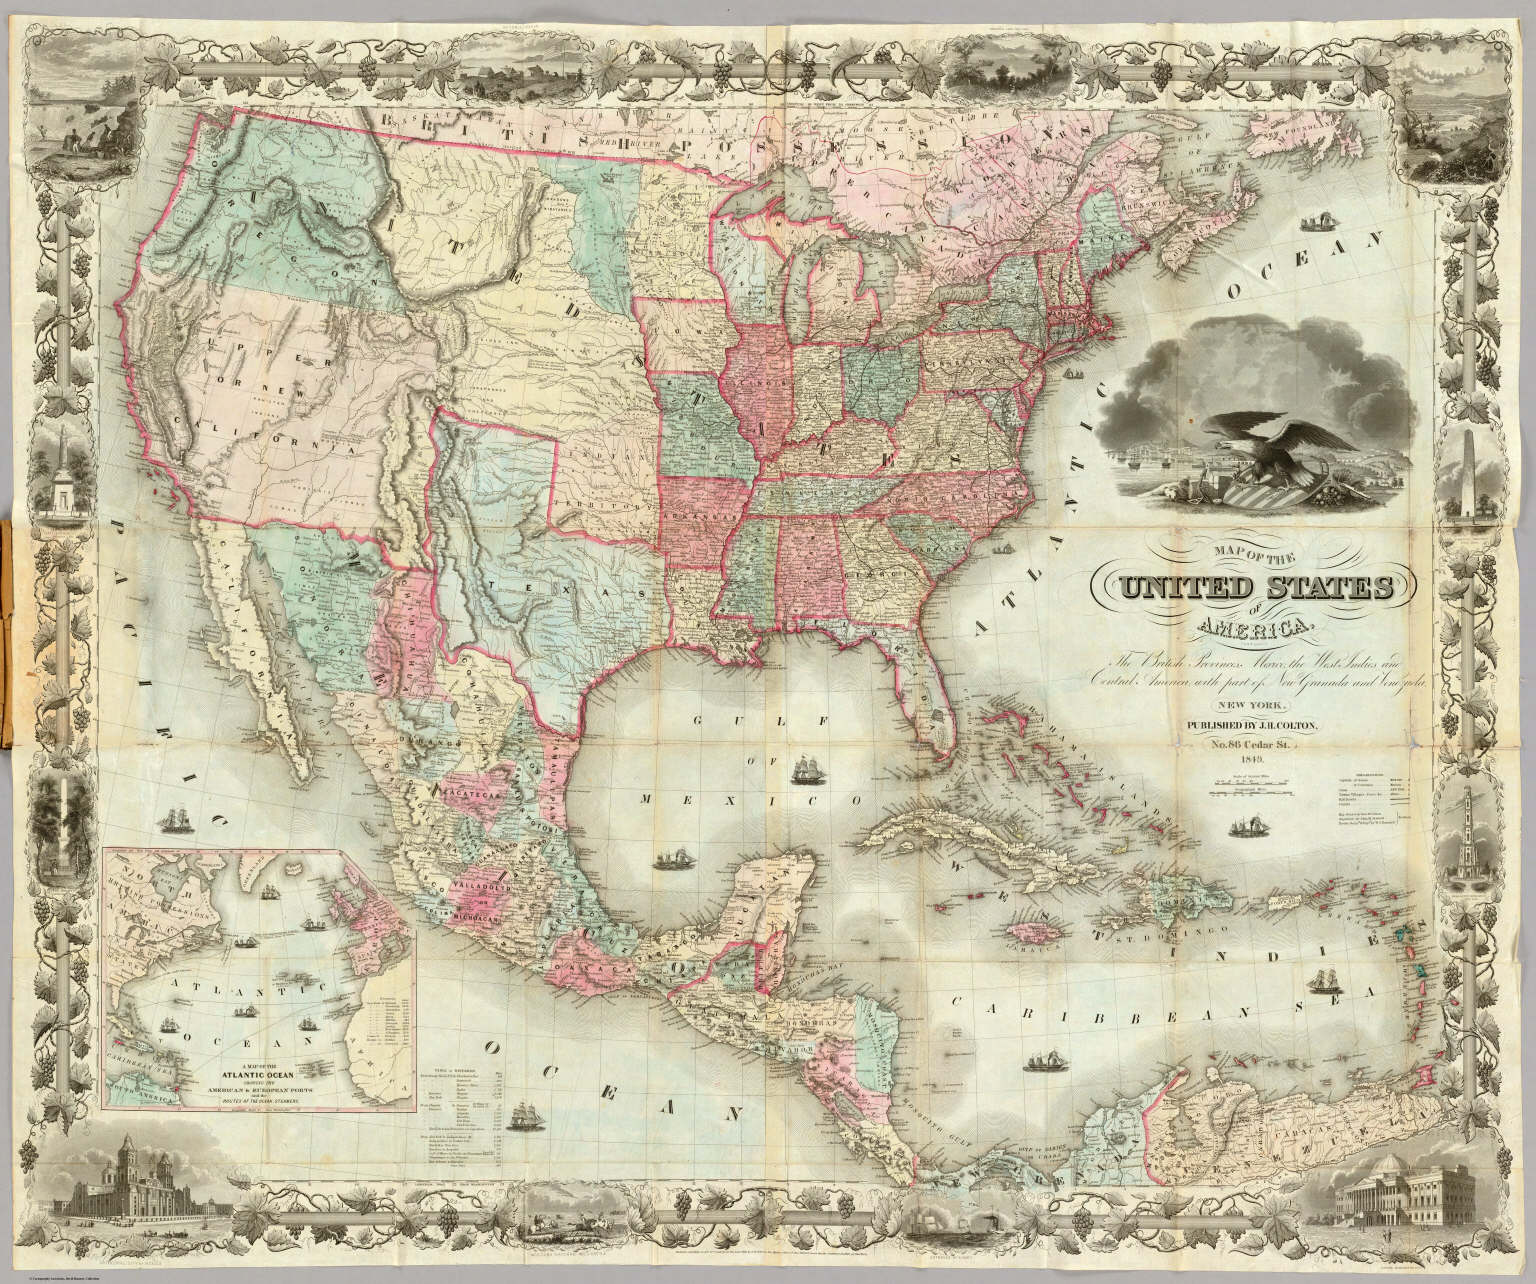 Map of the United States of America. / Colton, J.H. / 1849 United States Map on u.s. railroad map 1849, california map 1849, mexico map 1849, wisconsin map 1849, arizona map 1849, boston map 1849, texas map 1849, world map 1849, greece map 1849, nevada map 1849, europe map 1849,